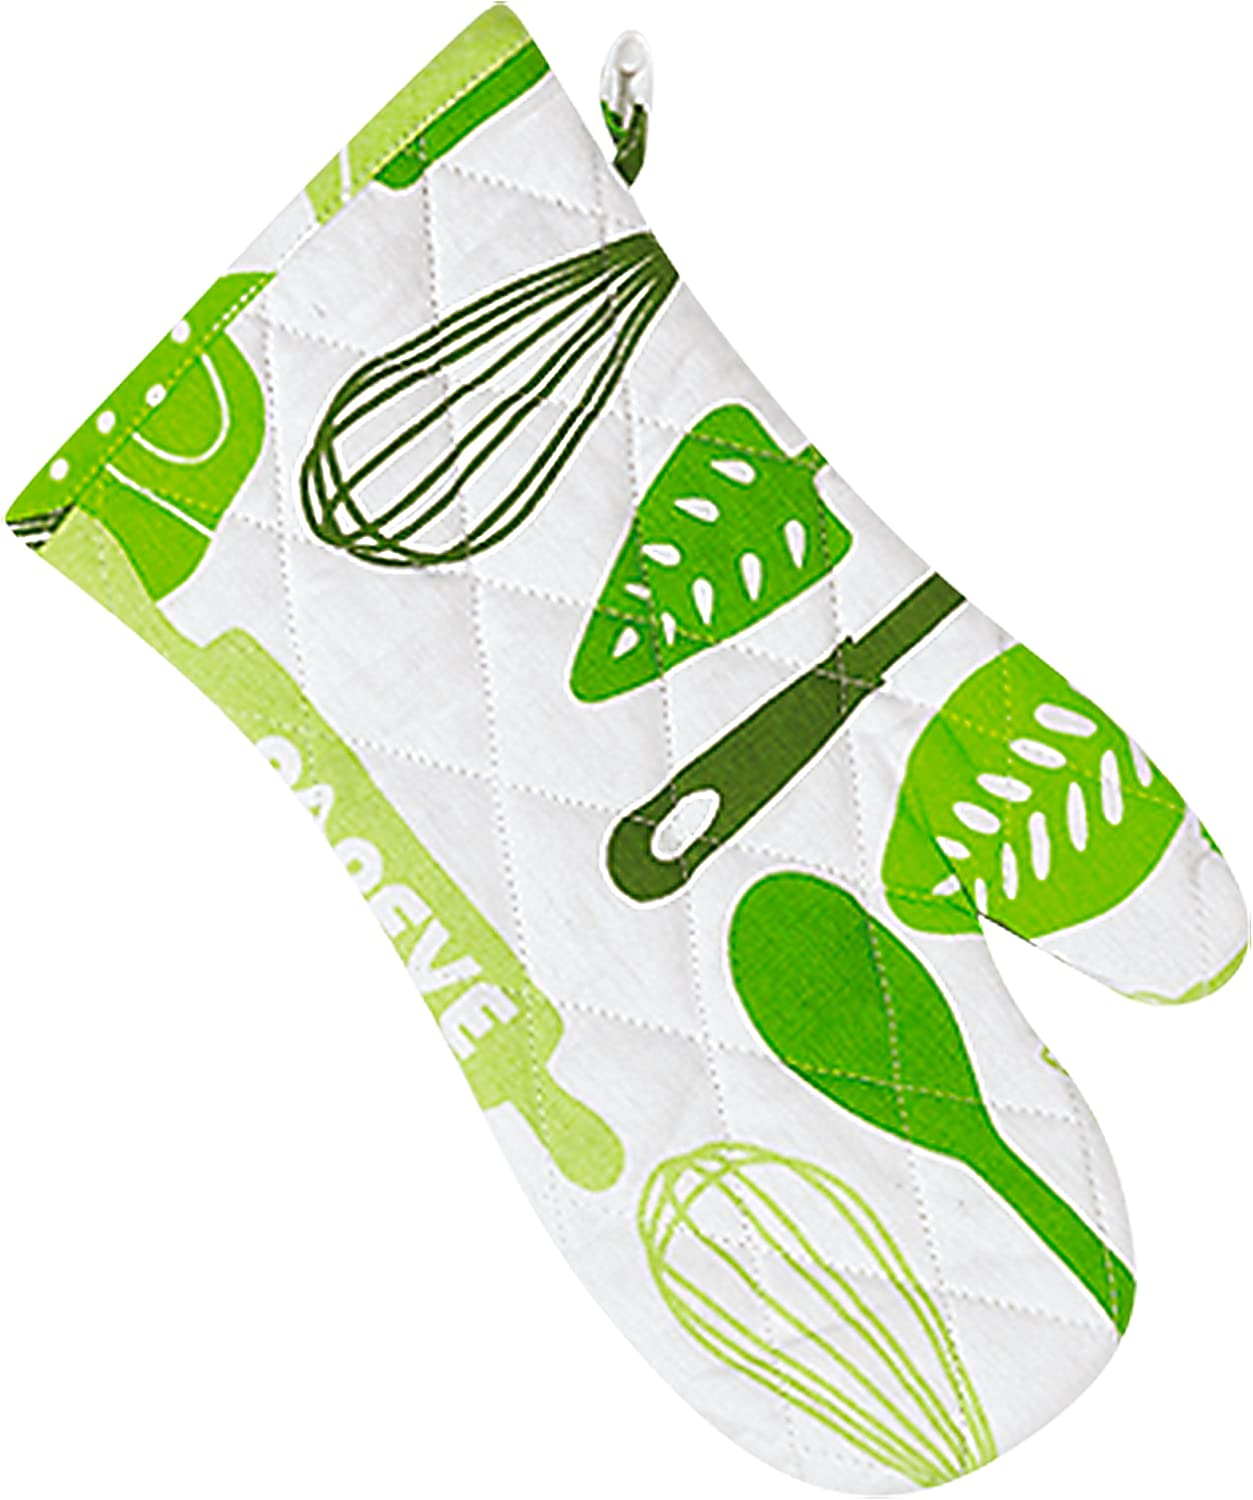 """Parve Green Oven Mitt – Pot Holder Glove – 100% Cotton – Hanging Loop for Easy Storage - 13"""" x 6"""" - Color Coded Kitchen Tools by The Kosher Cook"""